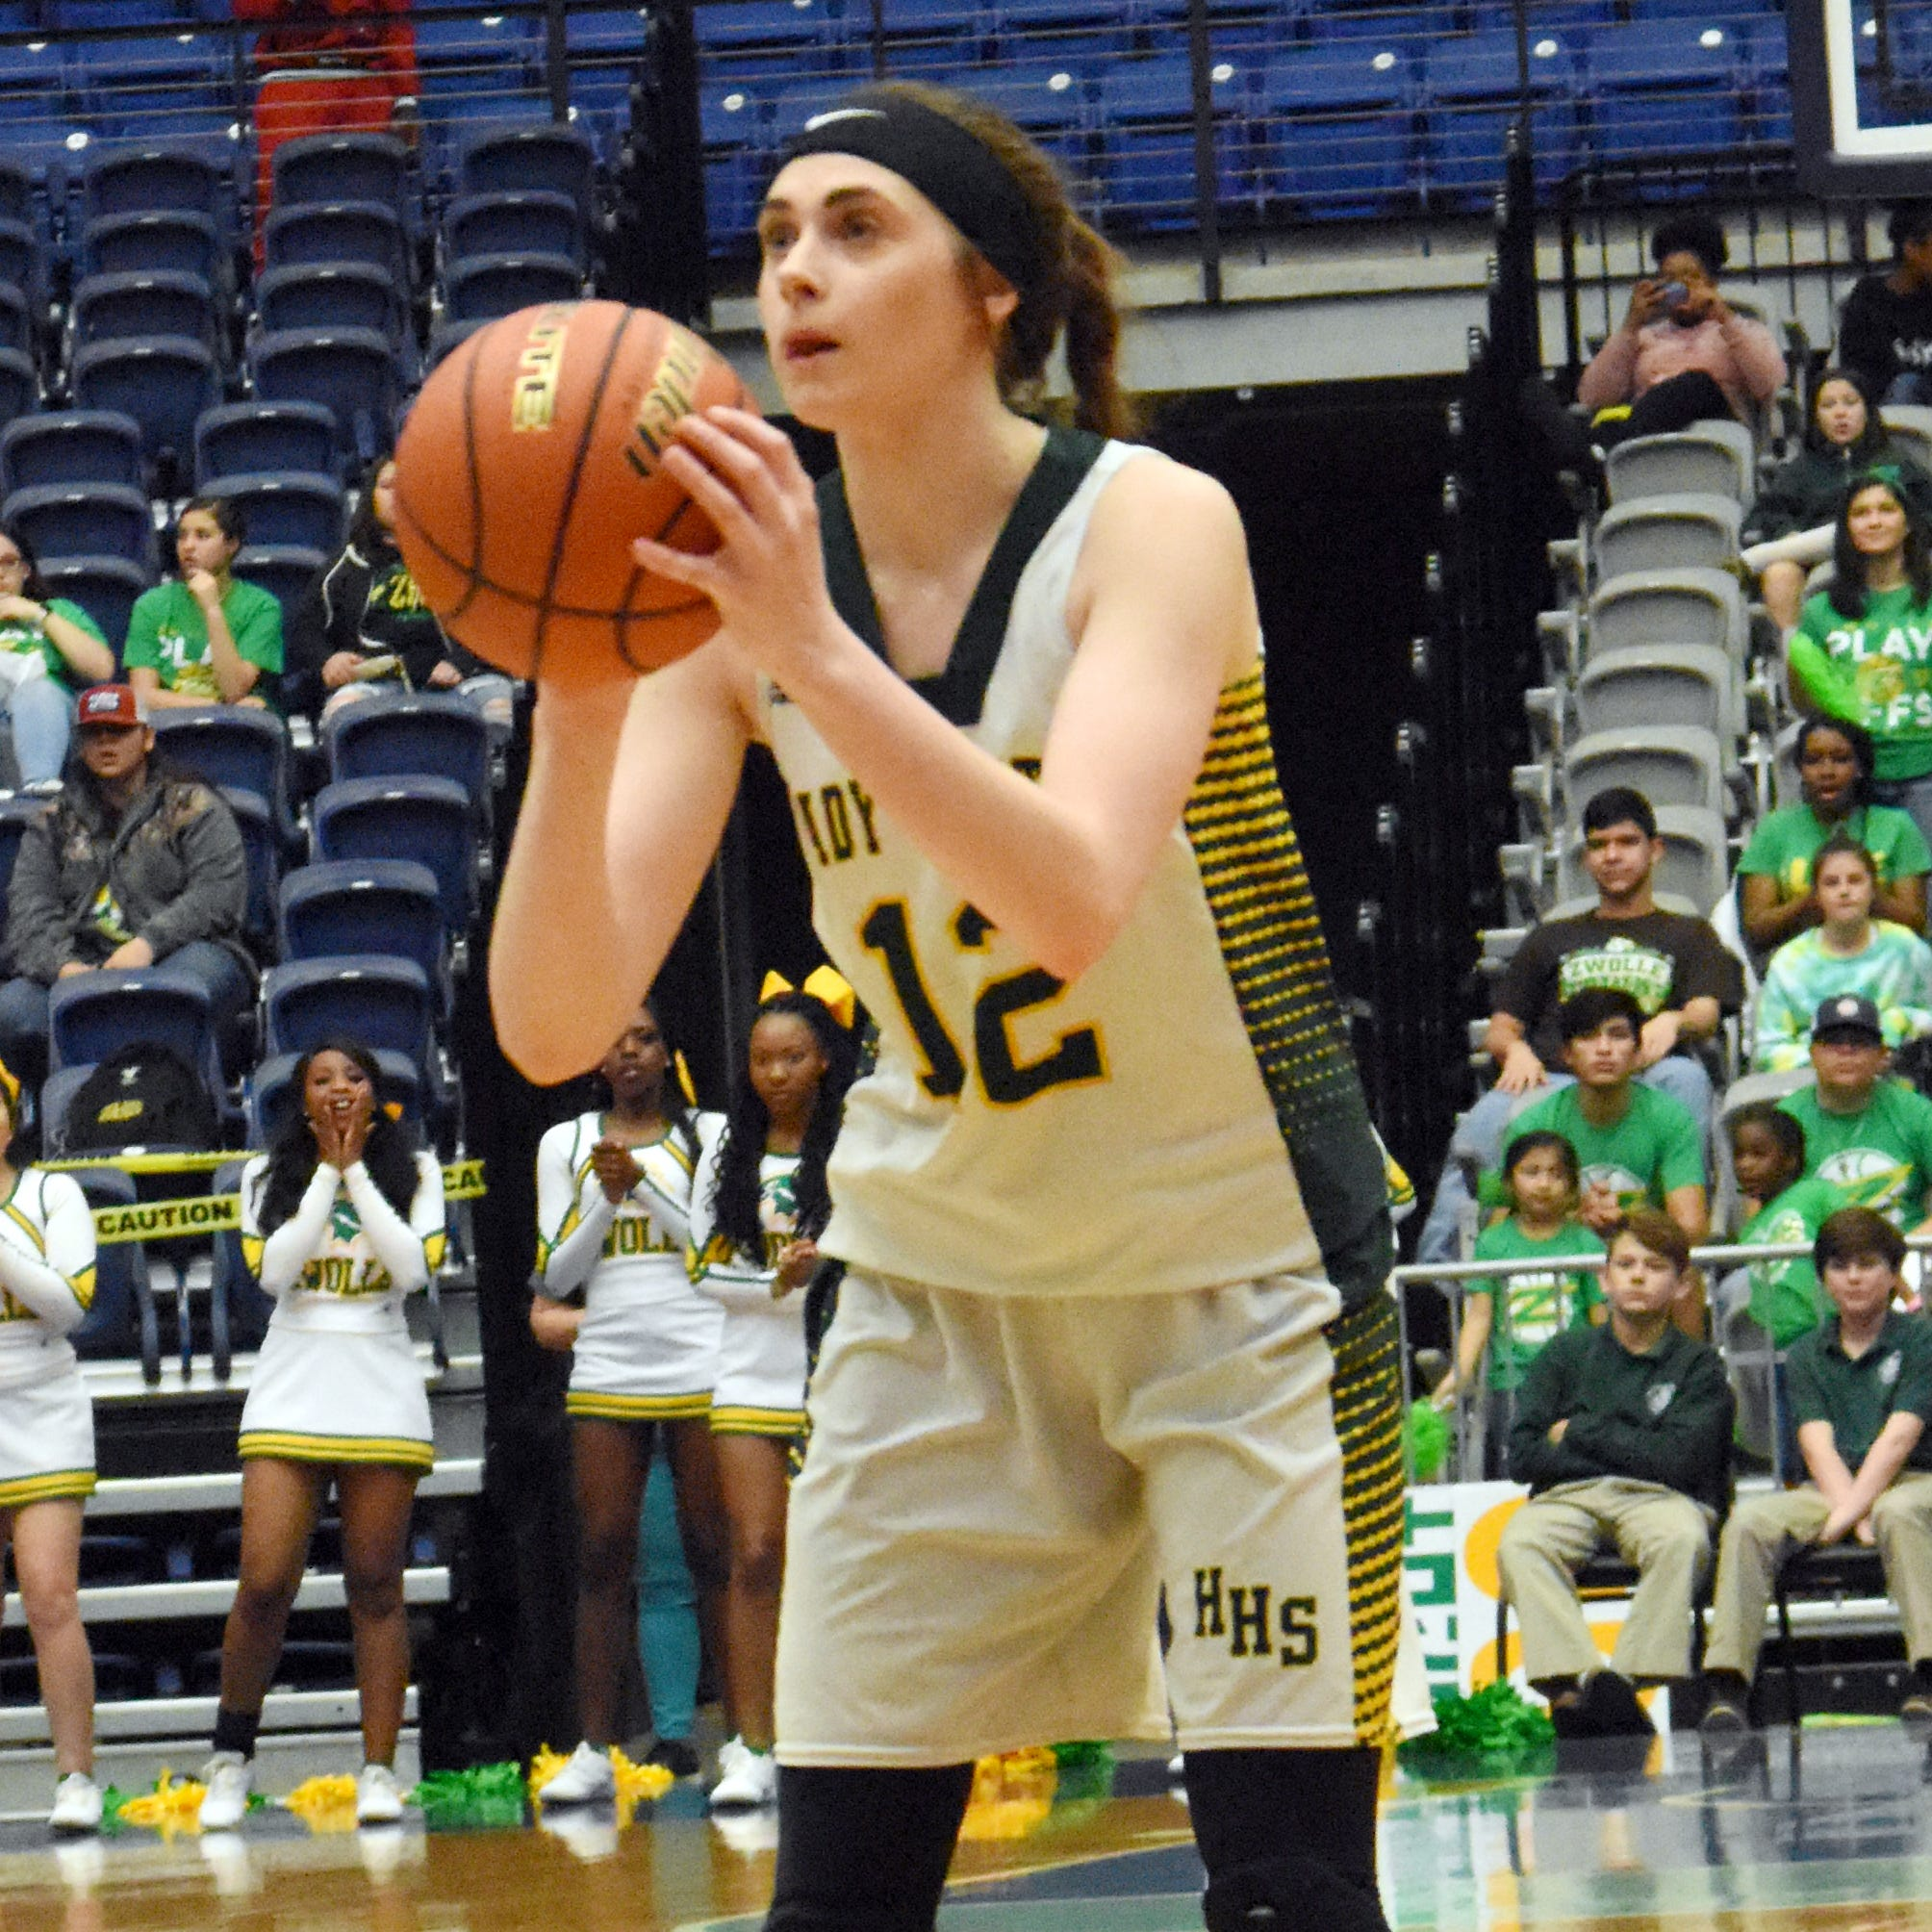 Hot-shooting Hicks heads to first finals since 1997